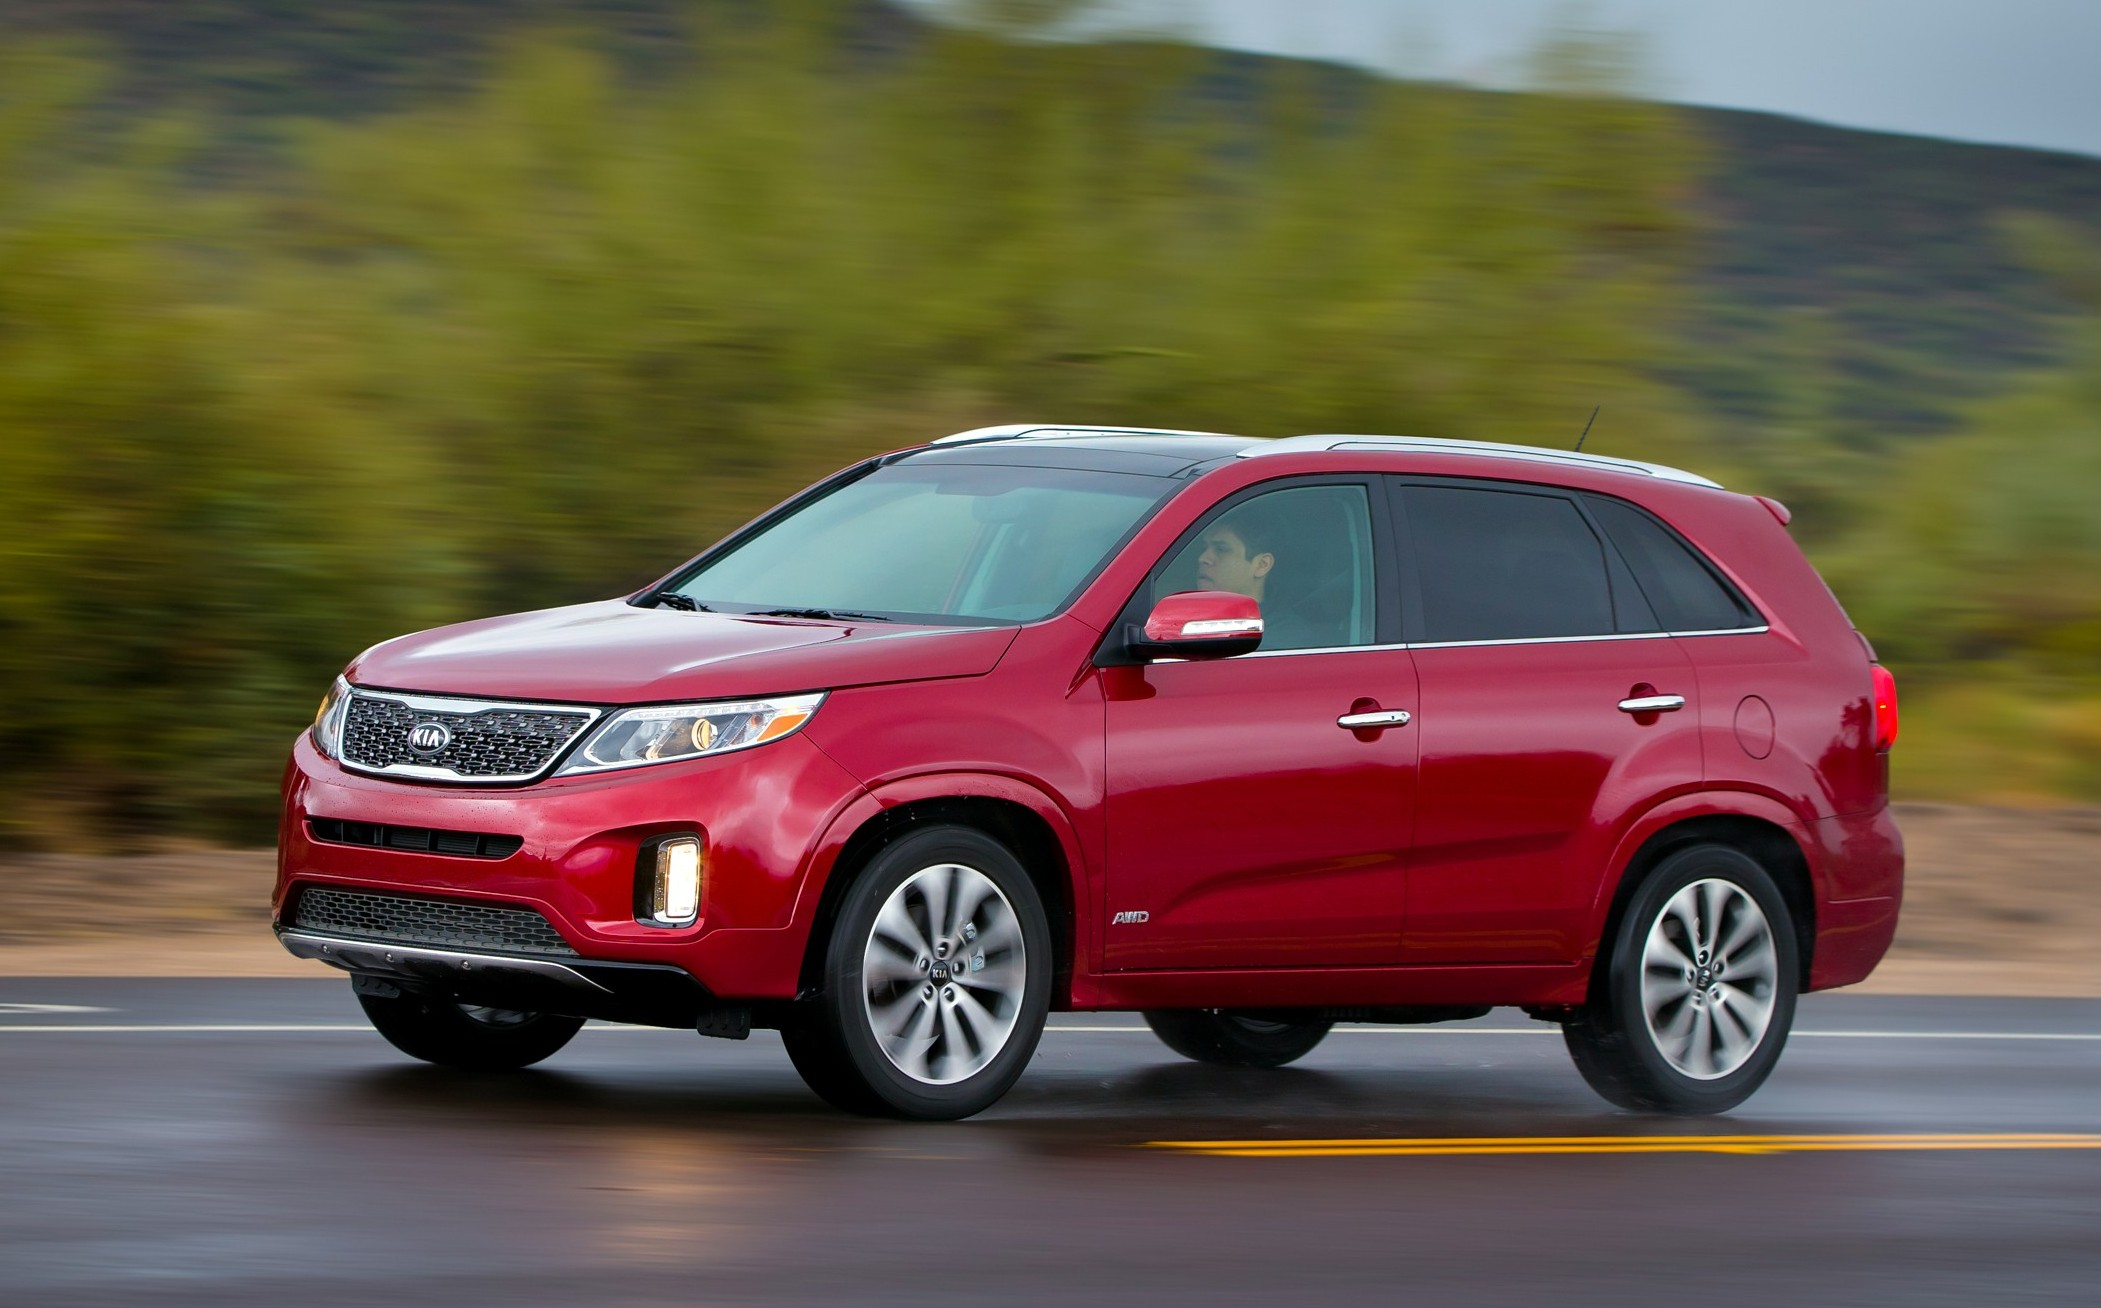 new and used kia sorento prices photos reviews specs   the car